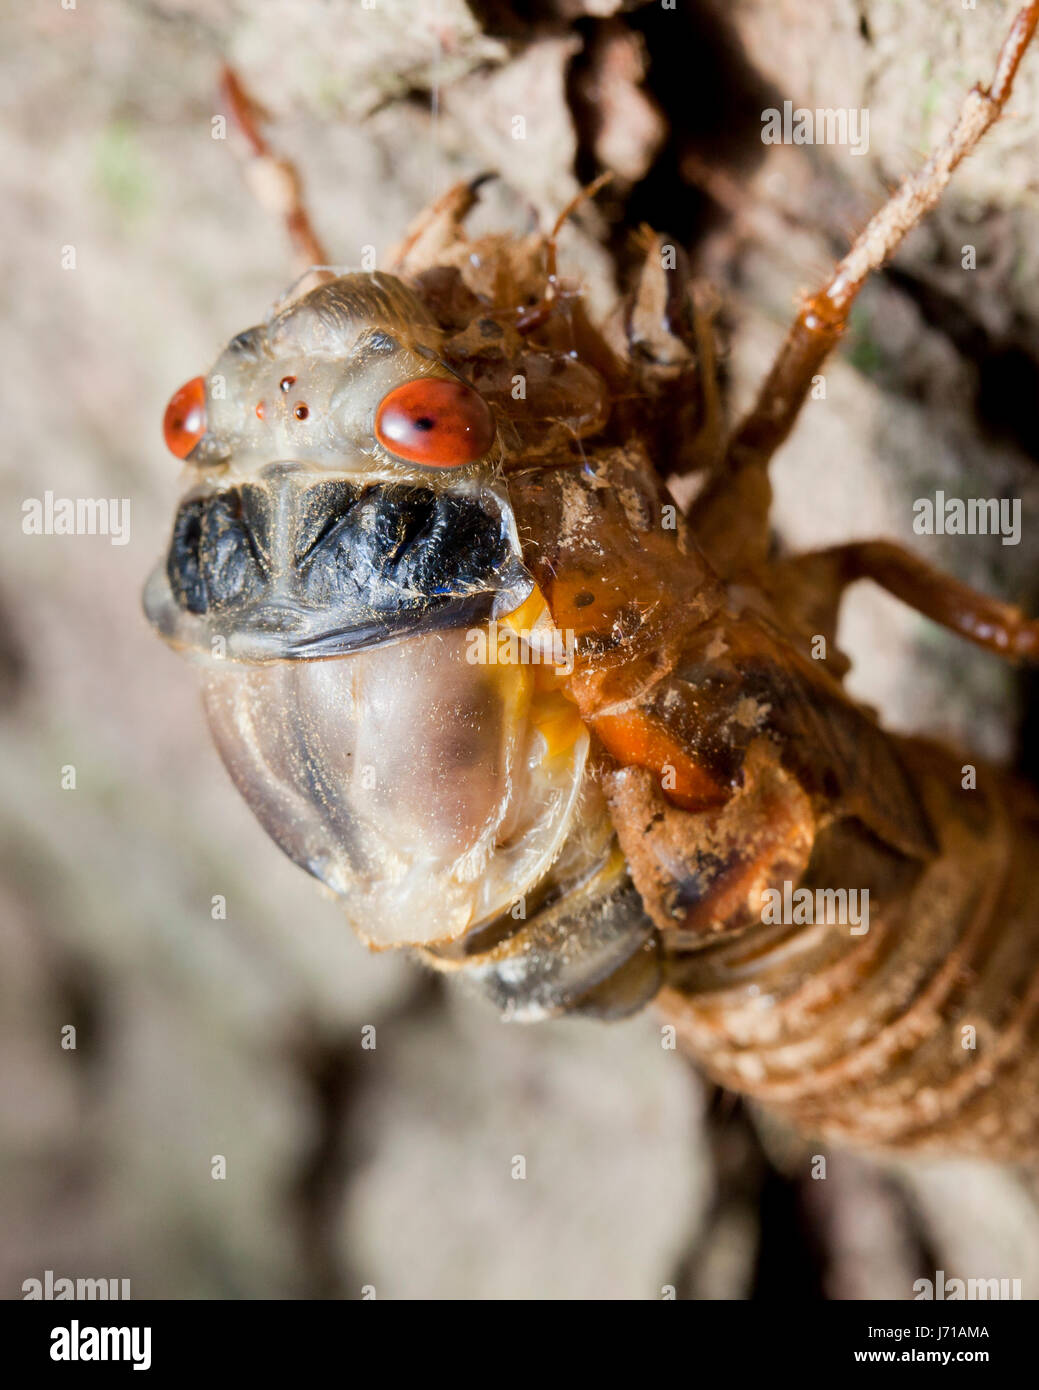 Brood X cicada (Magicicada) during final molt emerging from exoskeleton , May 2017 - Virginia USA Stock Photo